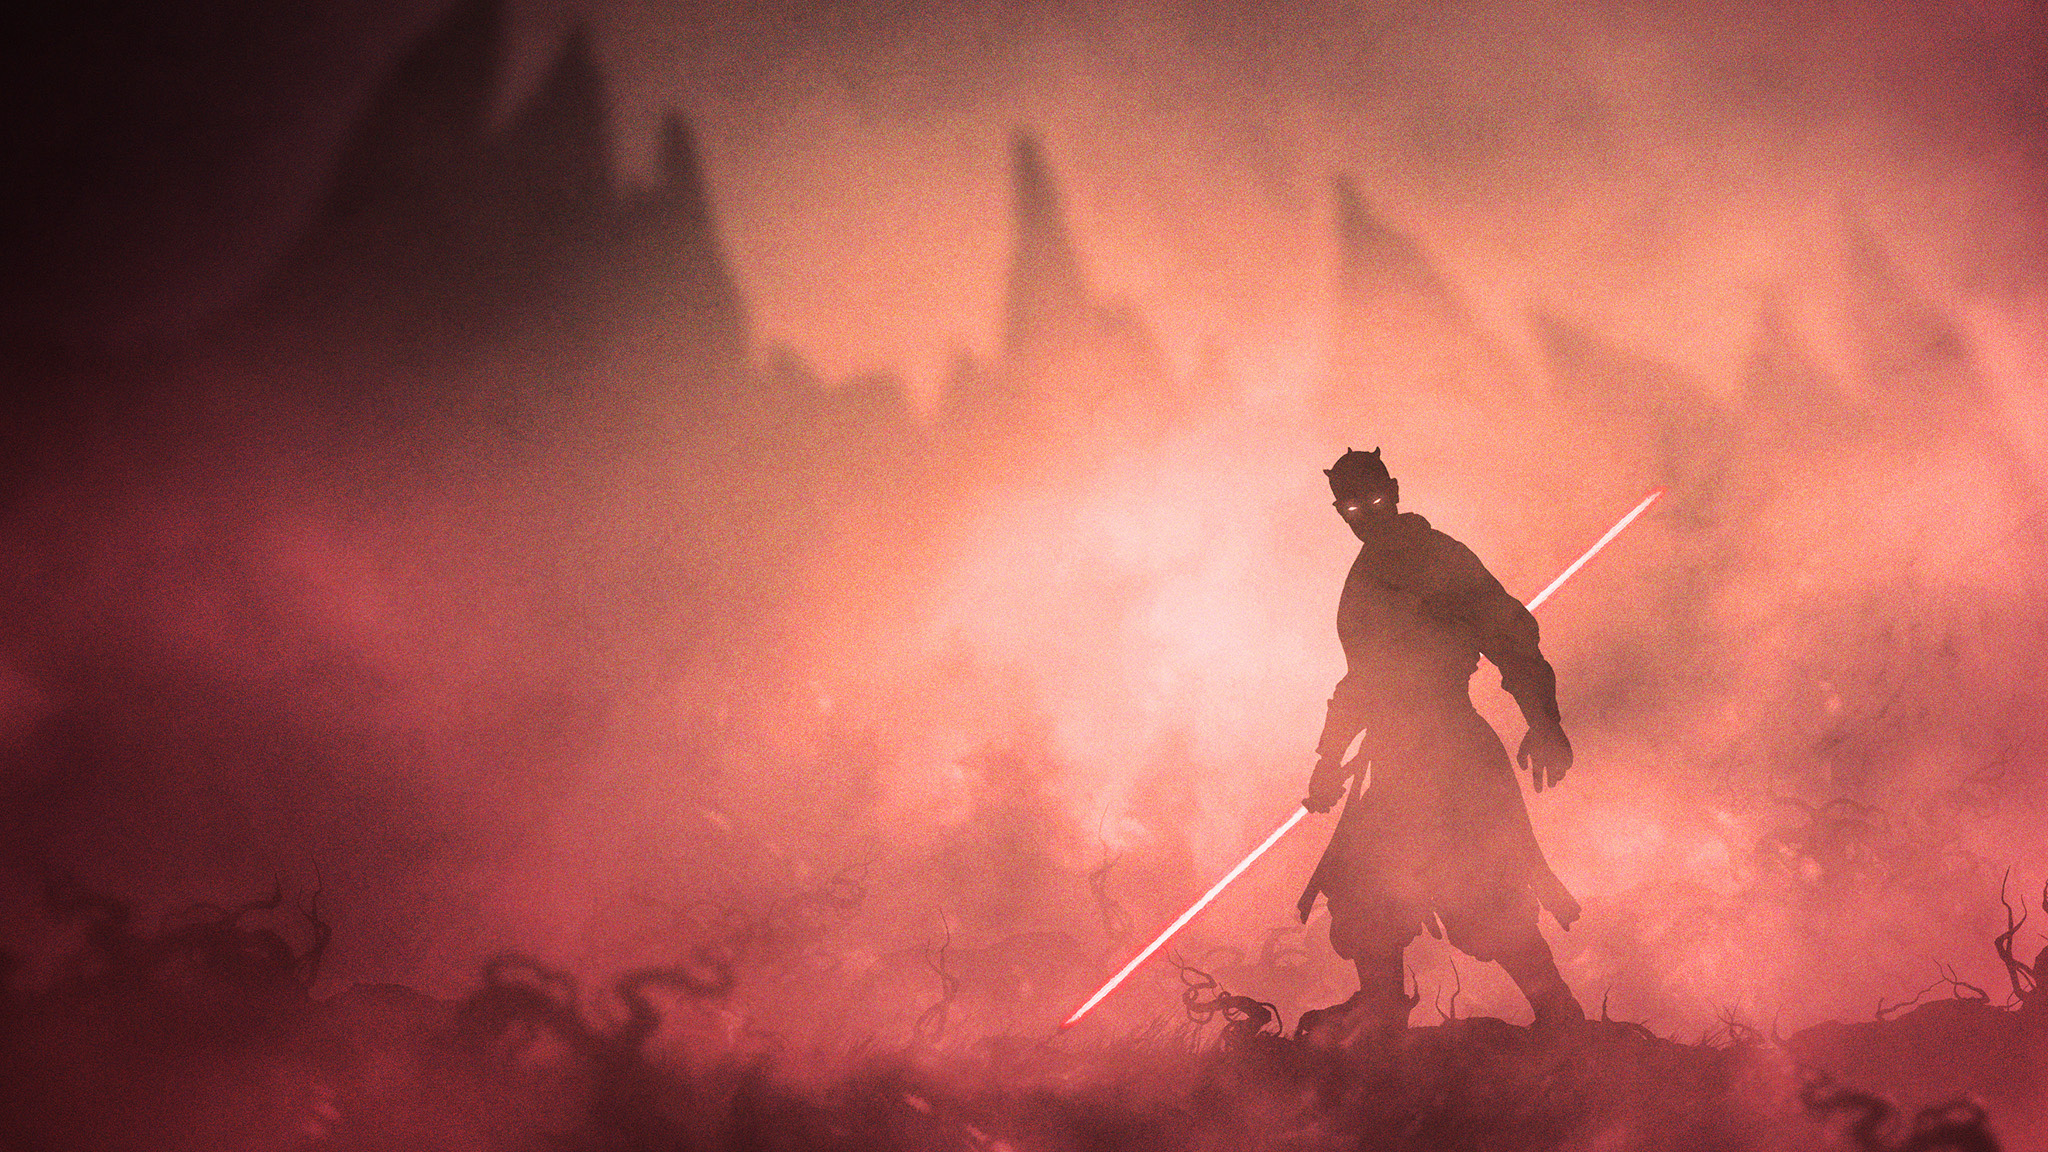 The Best Darth Maul Wallpaper Laptop Images